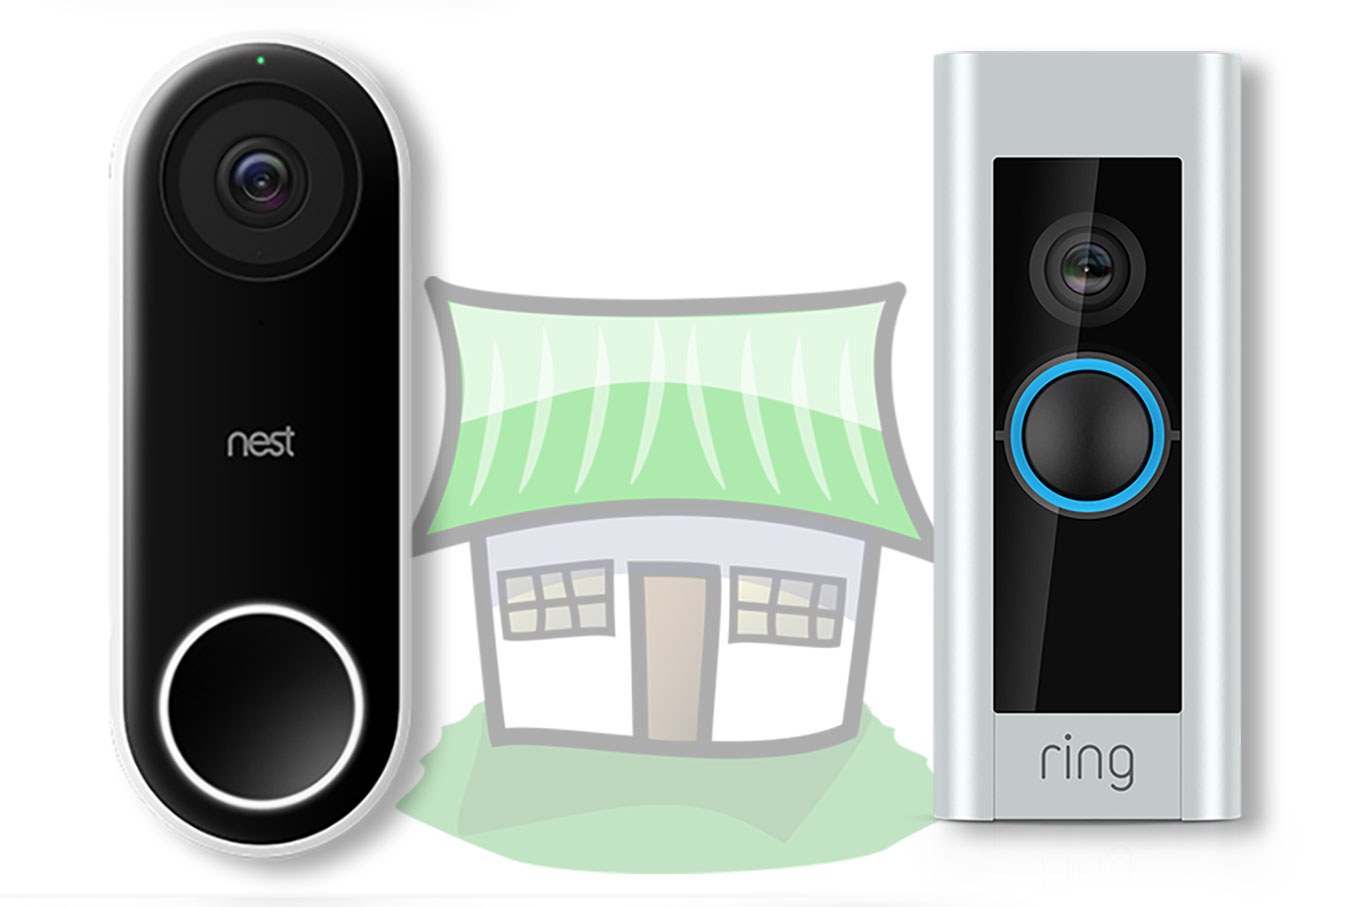 nest-hello-ring-video-doorbell-vergleich